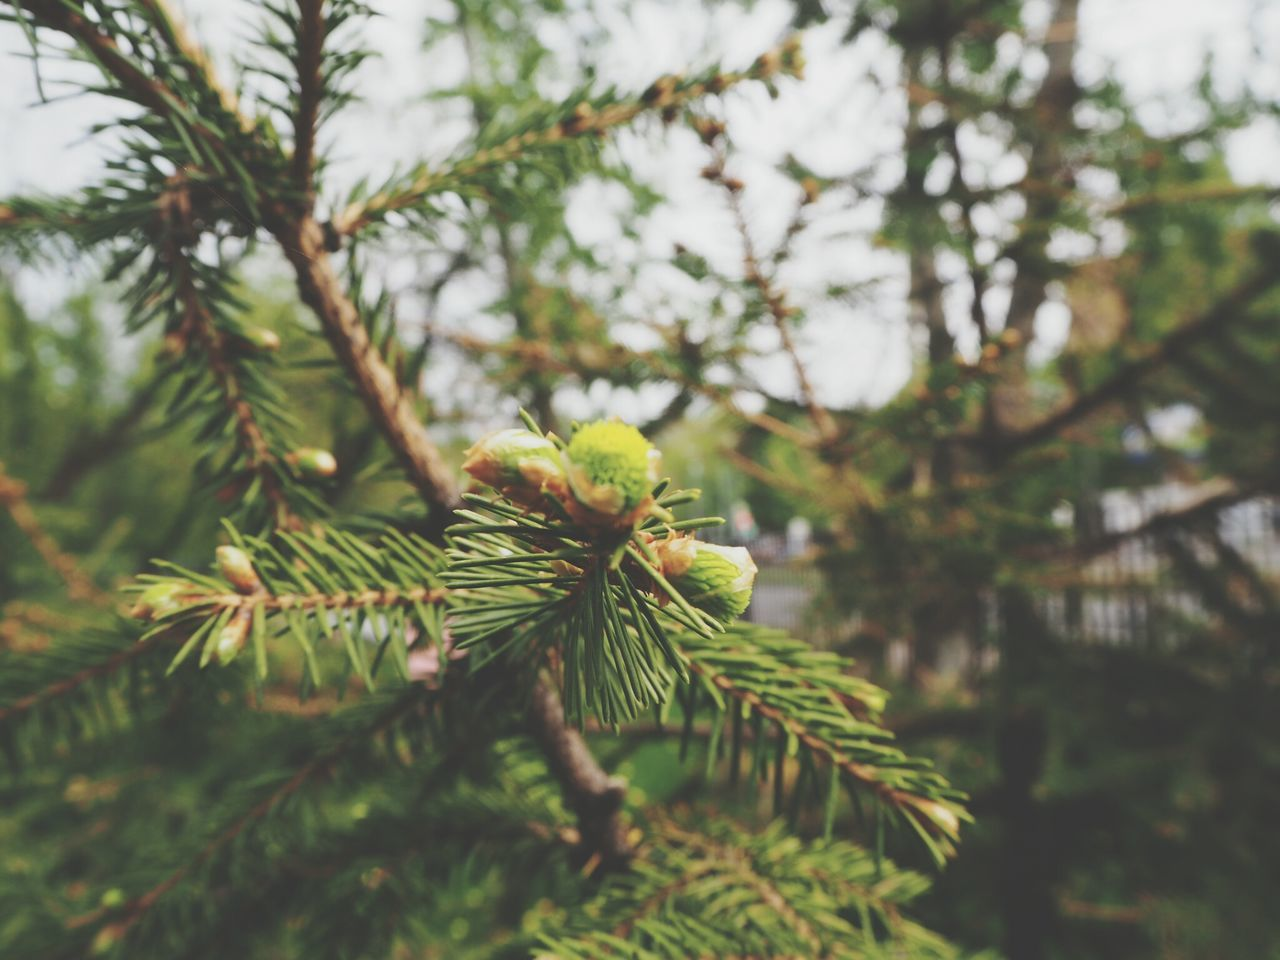 nature, green color, growth, focus on foreground, tree, beauty in nature, day, no people, pine tree, outdoors, close-up, branch, freshness